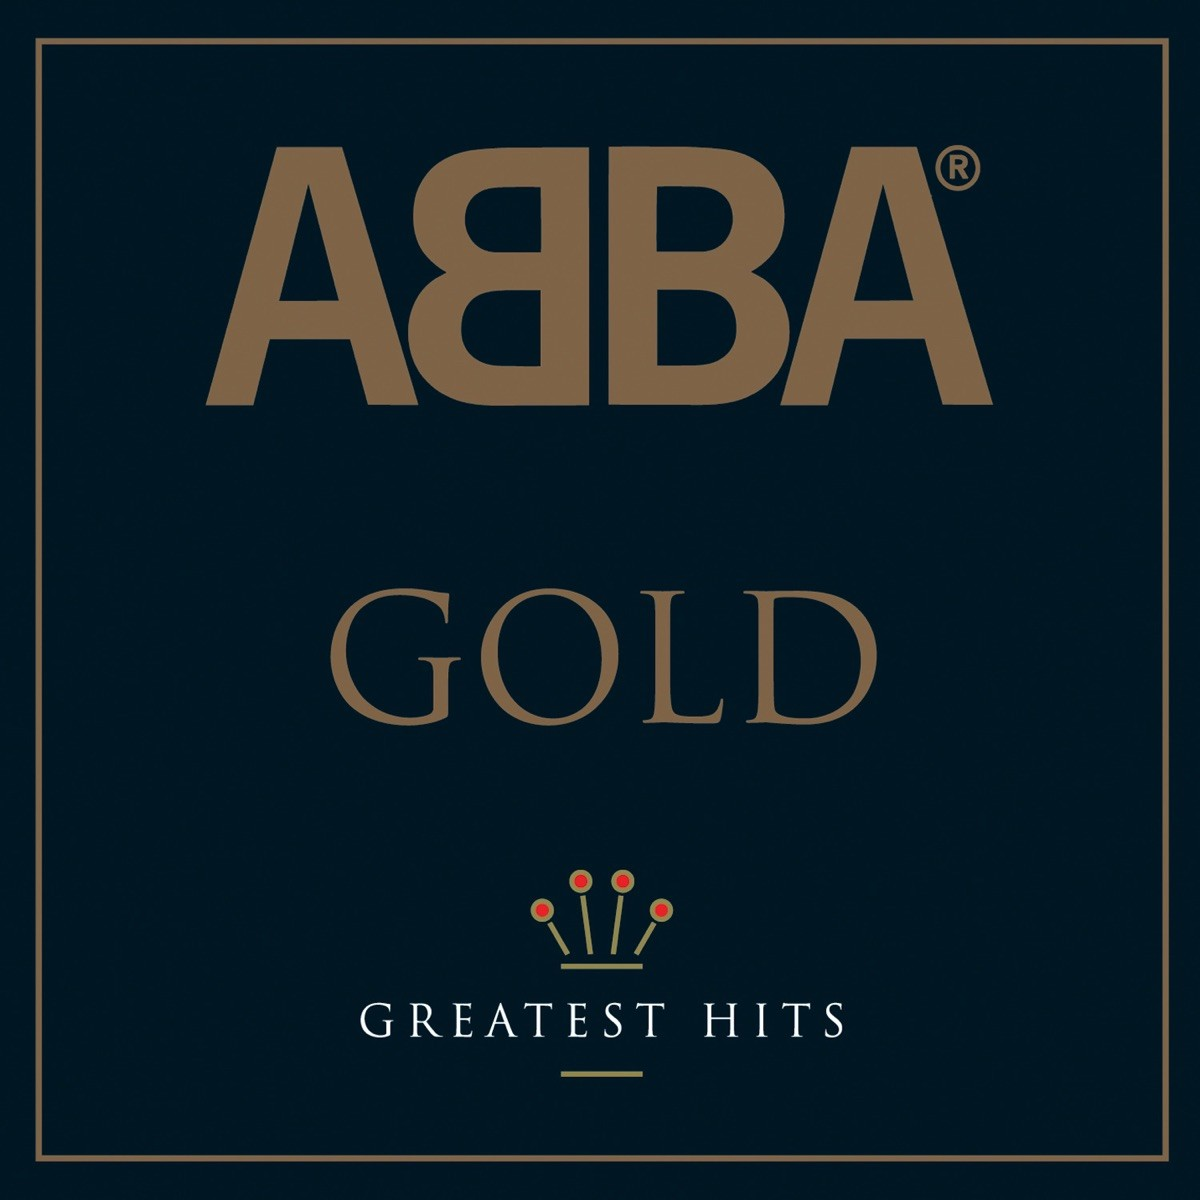 Abba - Gold: Greatest Hits CD - STARCD 5953